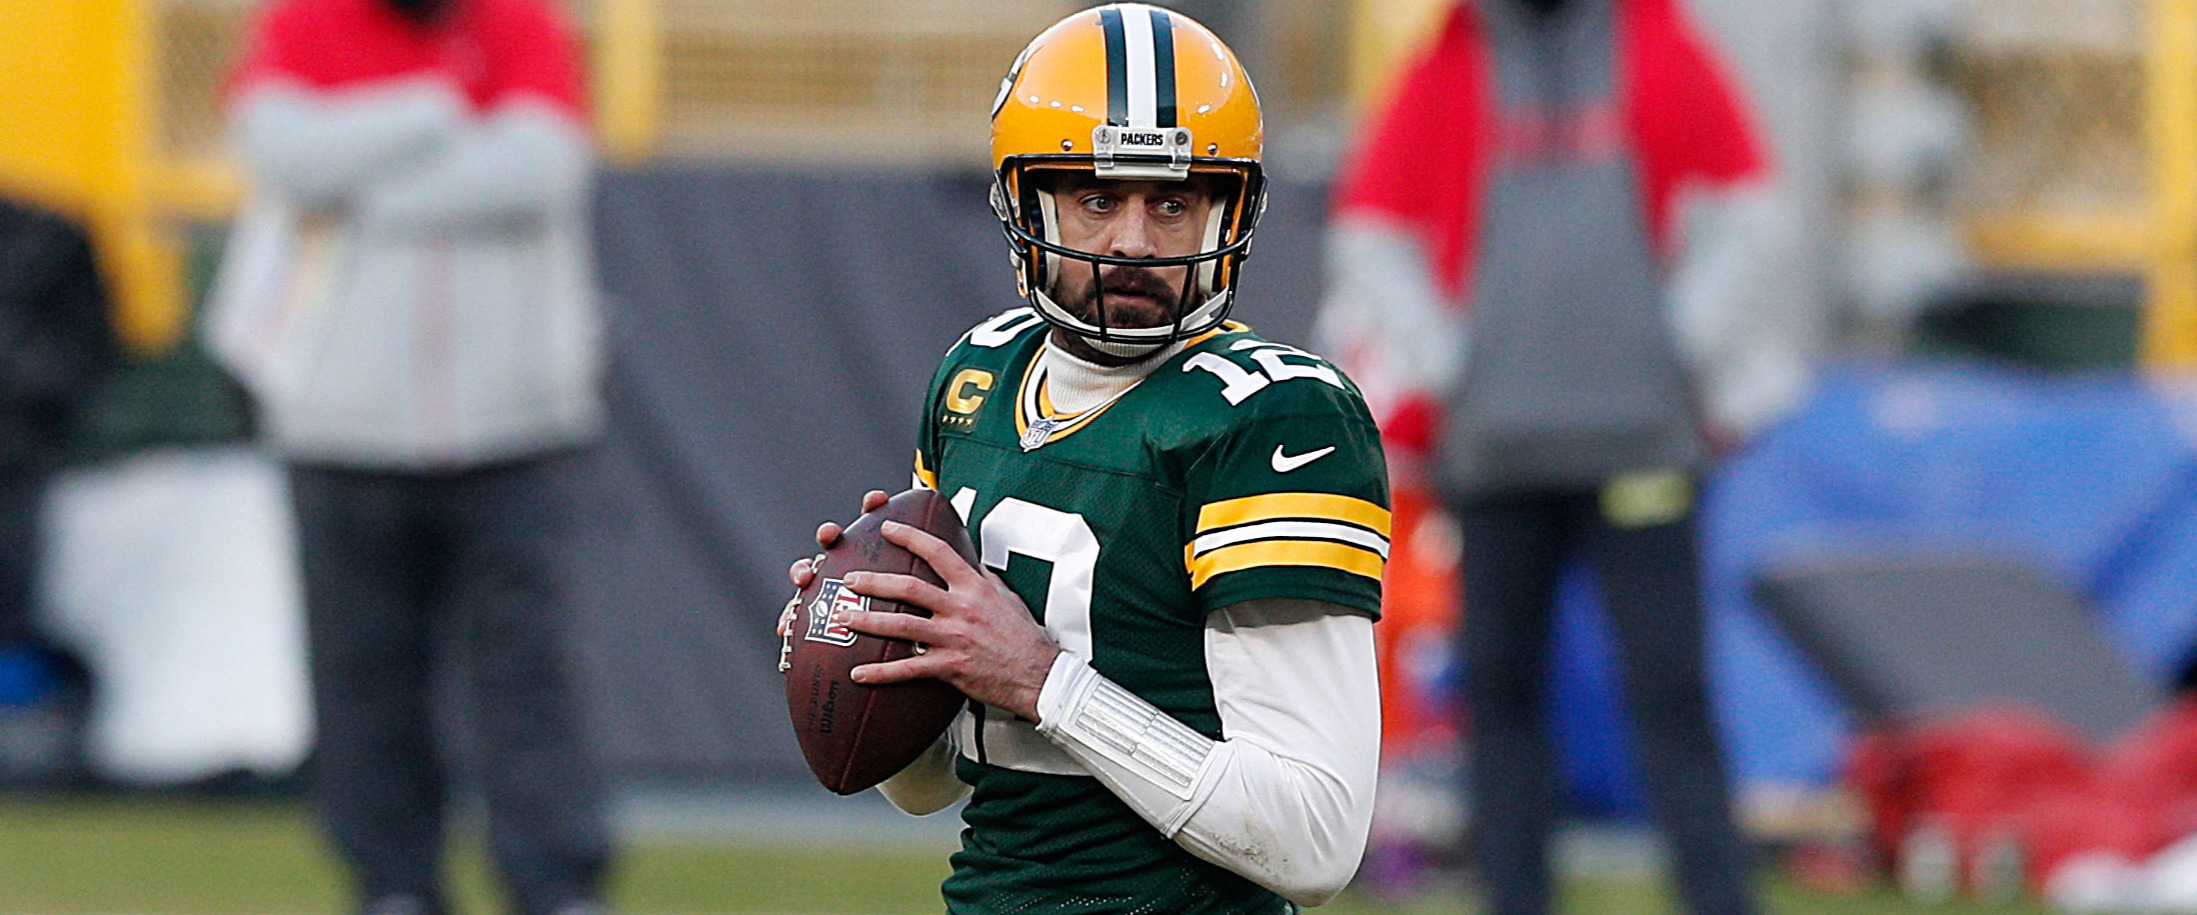 Aaron Rodgers wins NFL MVP for the 3rd time